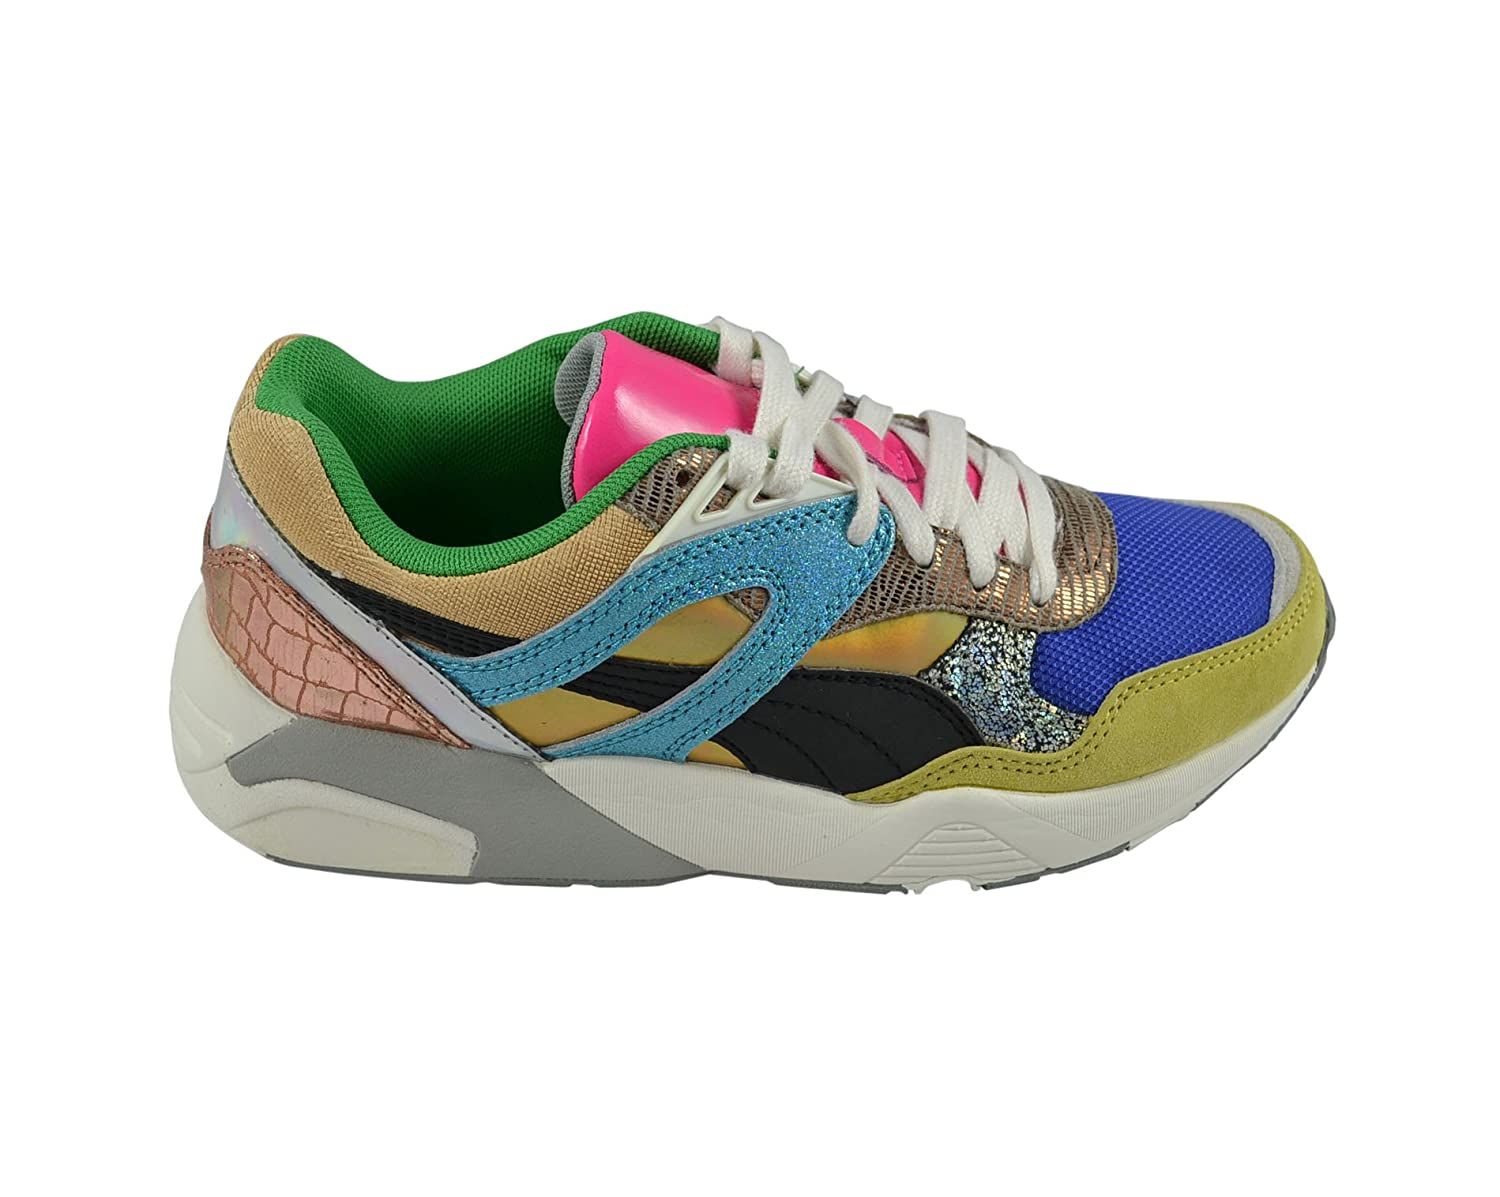 Royaume-Uni disponibilité 03003 076e0 Puma R698 Woman Polly Blue/Green/White Gr. 36: Amazon.de ...